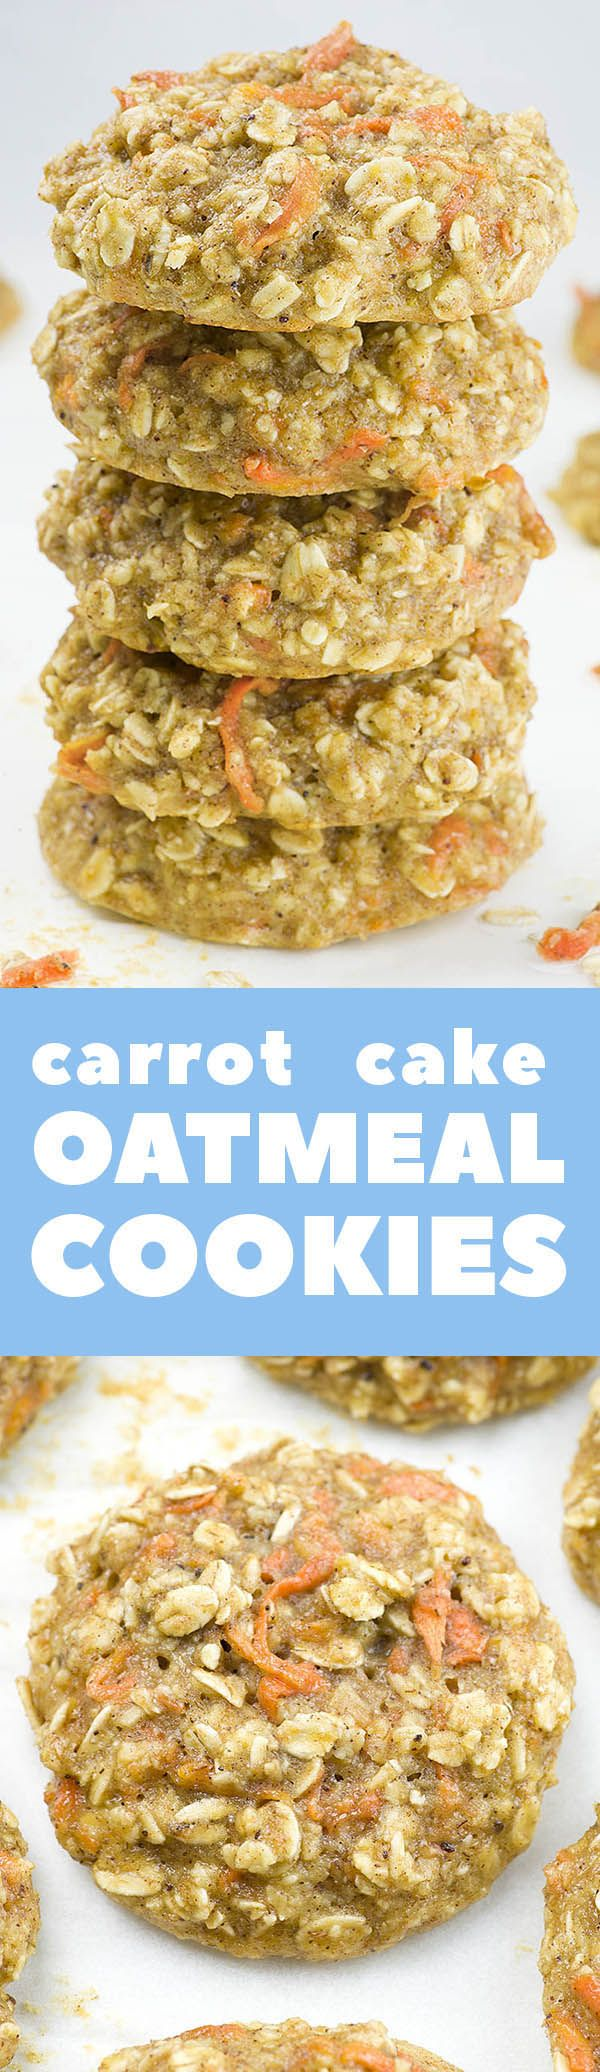 Need clean eating breakfast idea? These skinny Carrot Cake Oatmeal Cookies are easy, yummy and healthy recipe, you must try it.